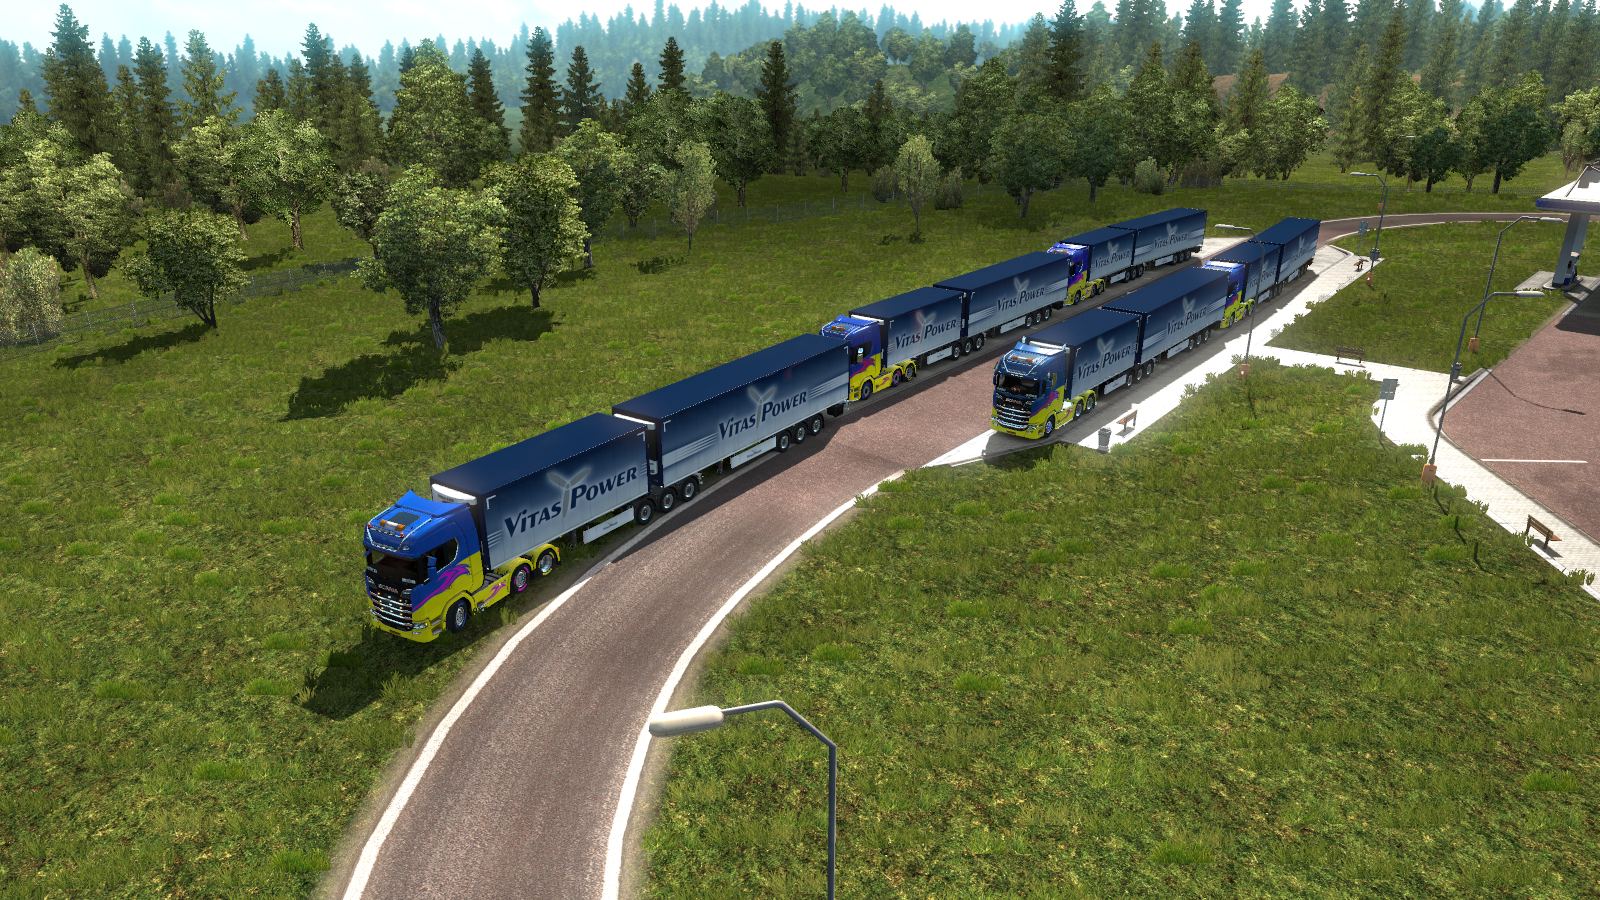 ets2_20190629_175229_00.png